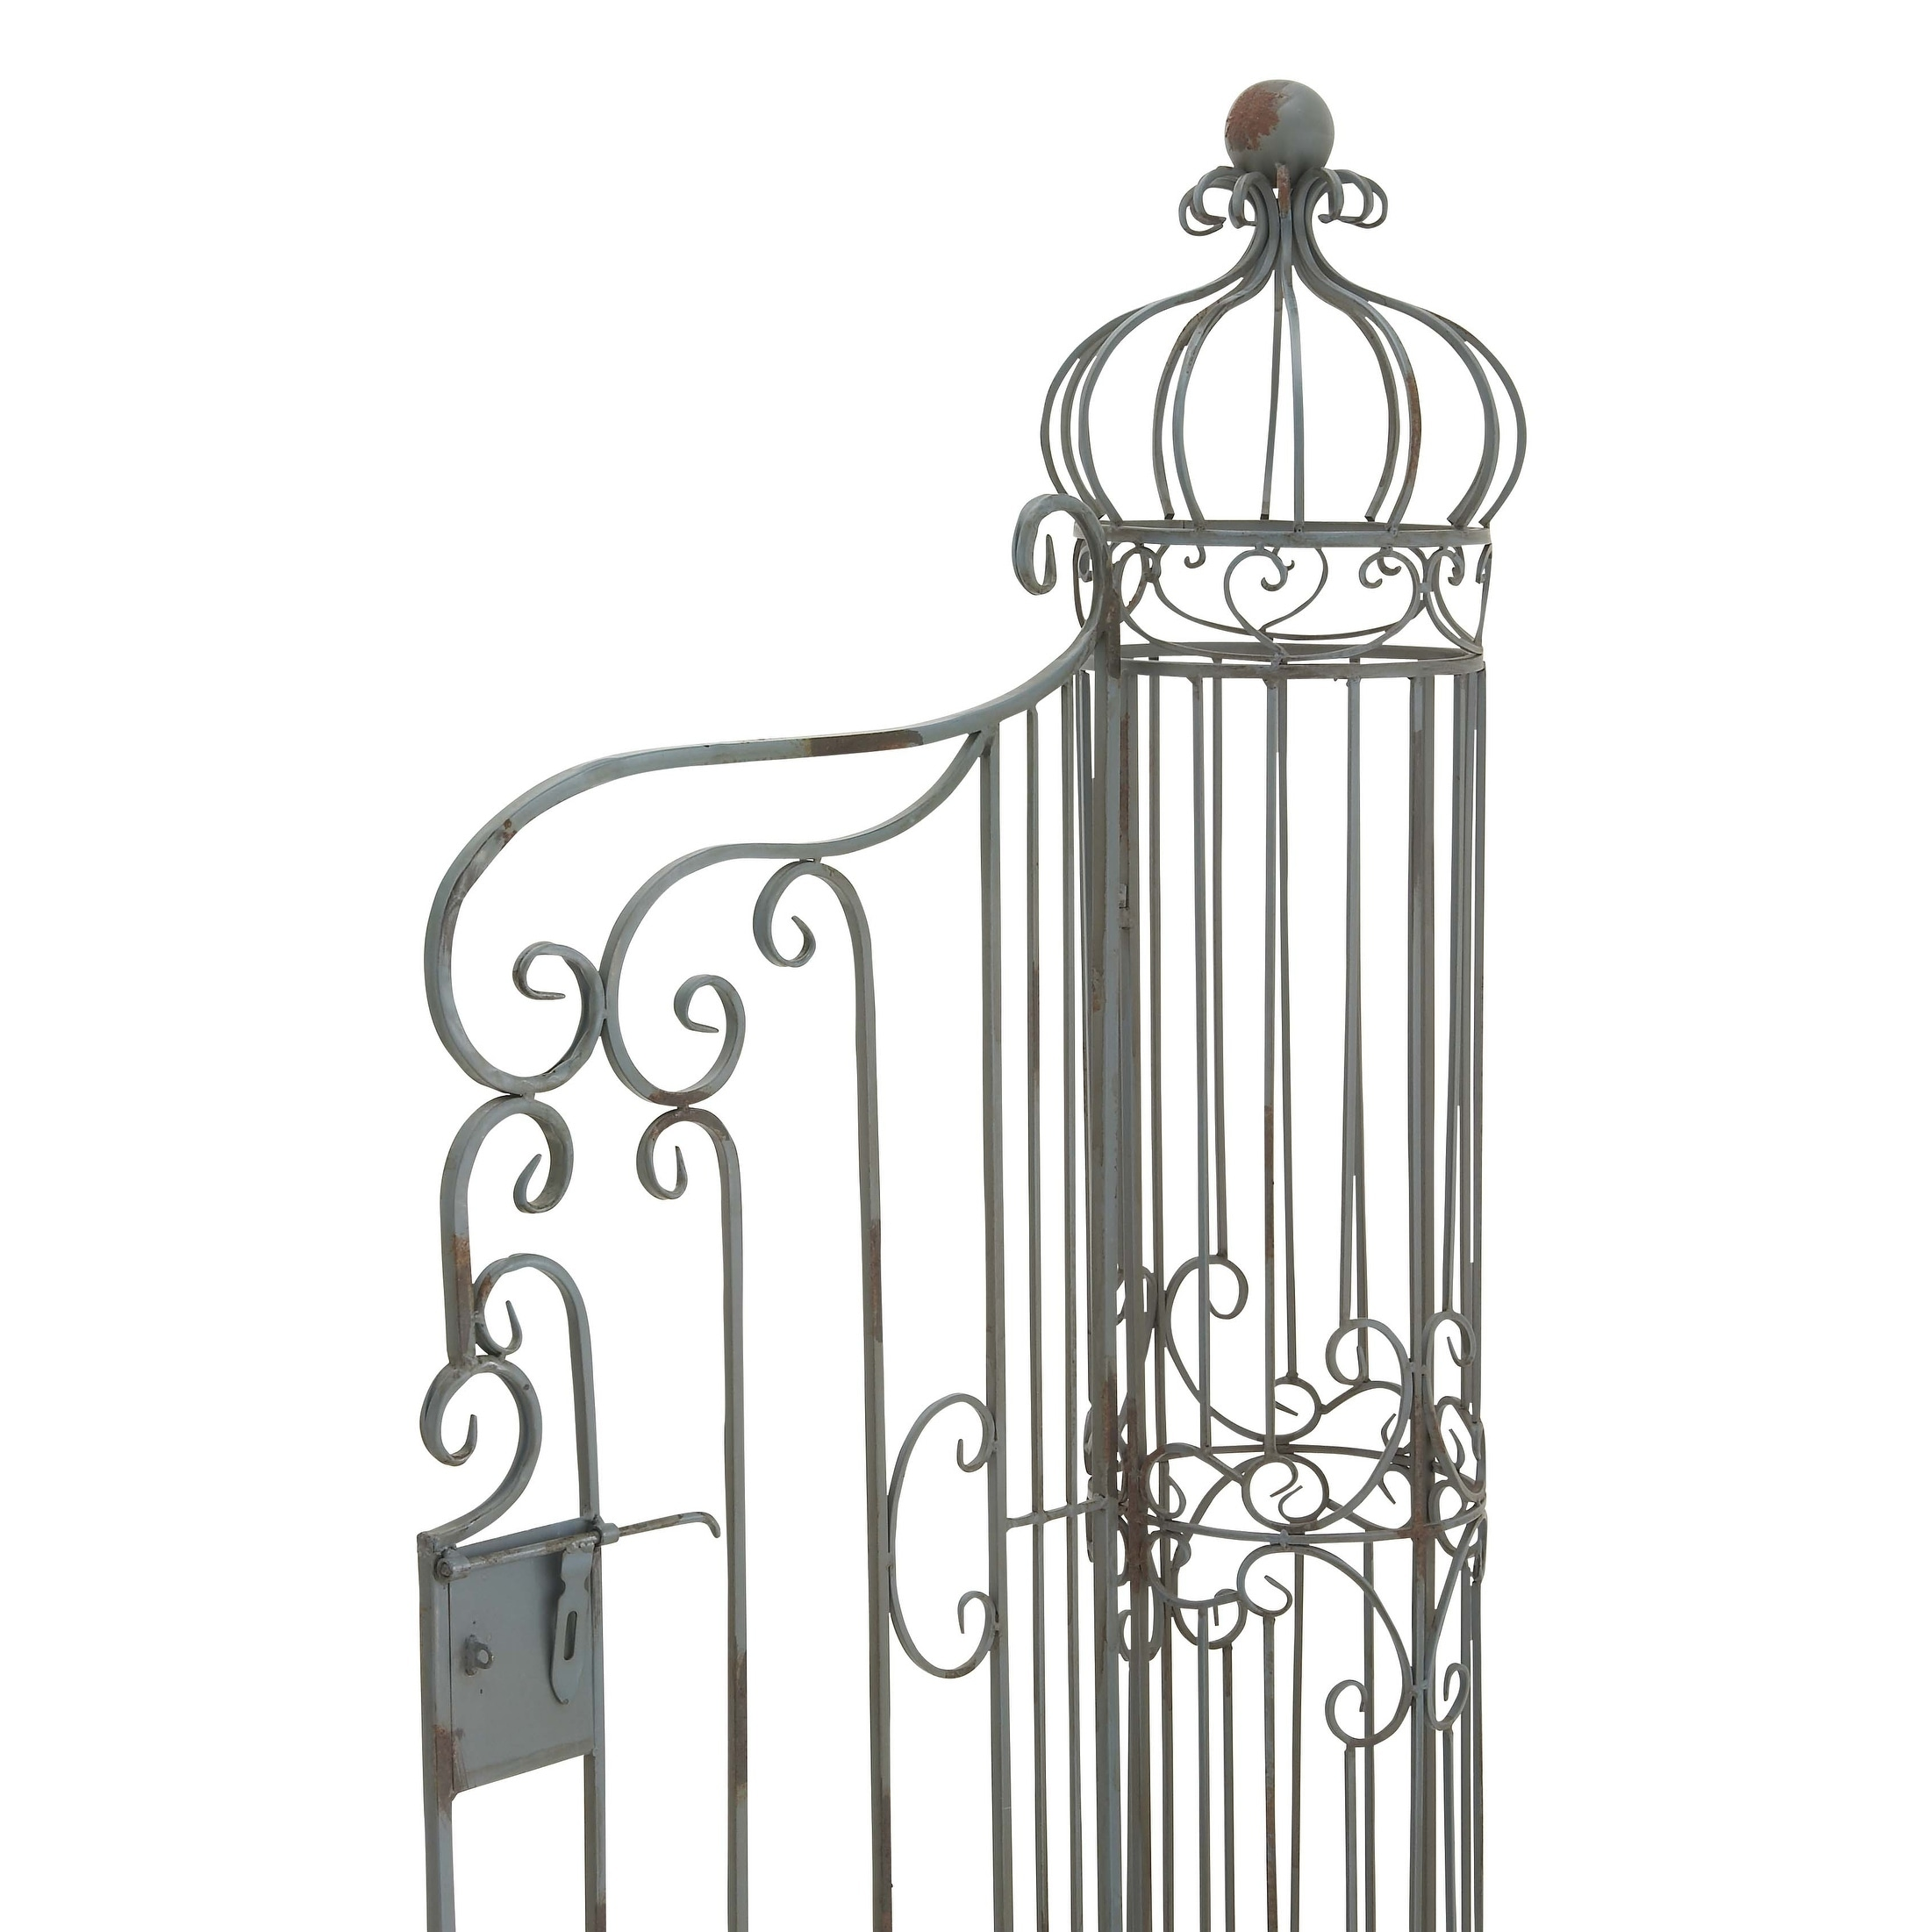 Charmant Shop 62u201d X 67u201d Traditional Metal Garden Gate W/ Latch And Ornate Scrollwork  By Studio 350   On Sale   Free Shipping Today   Overstock.com   10116582